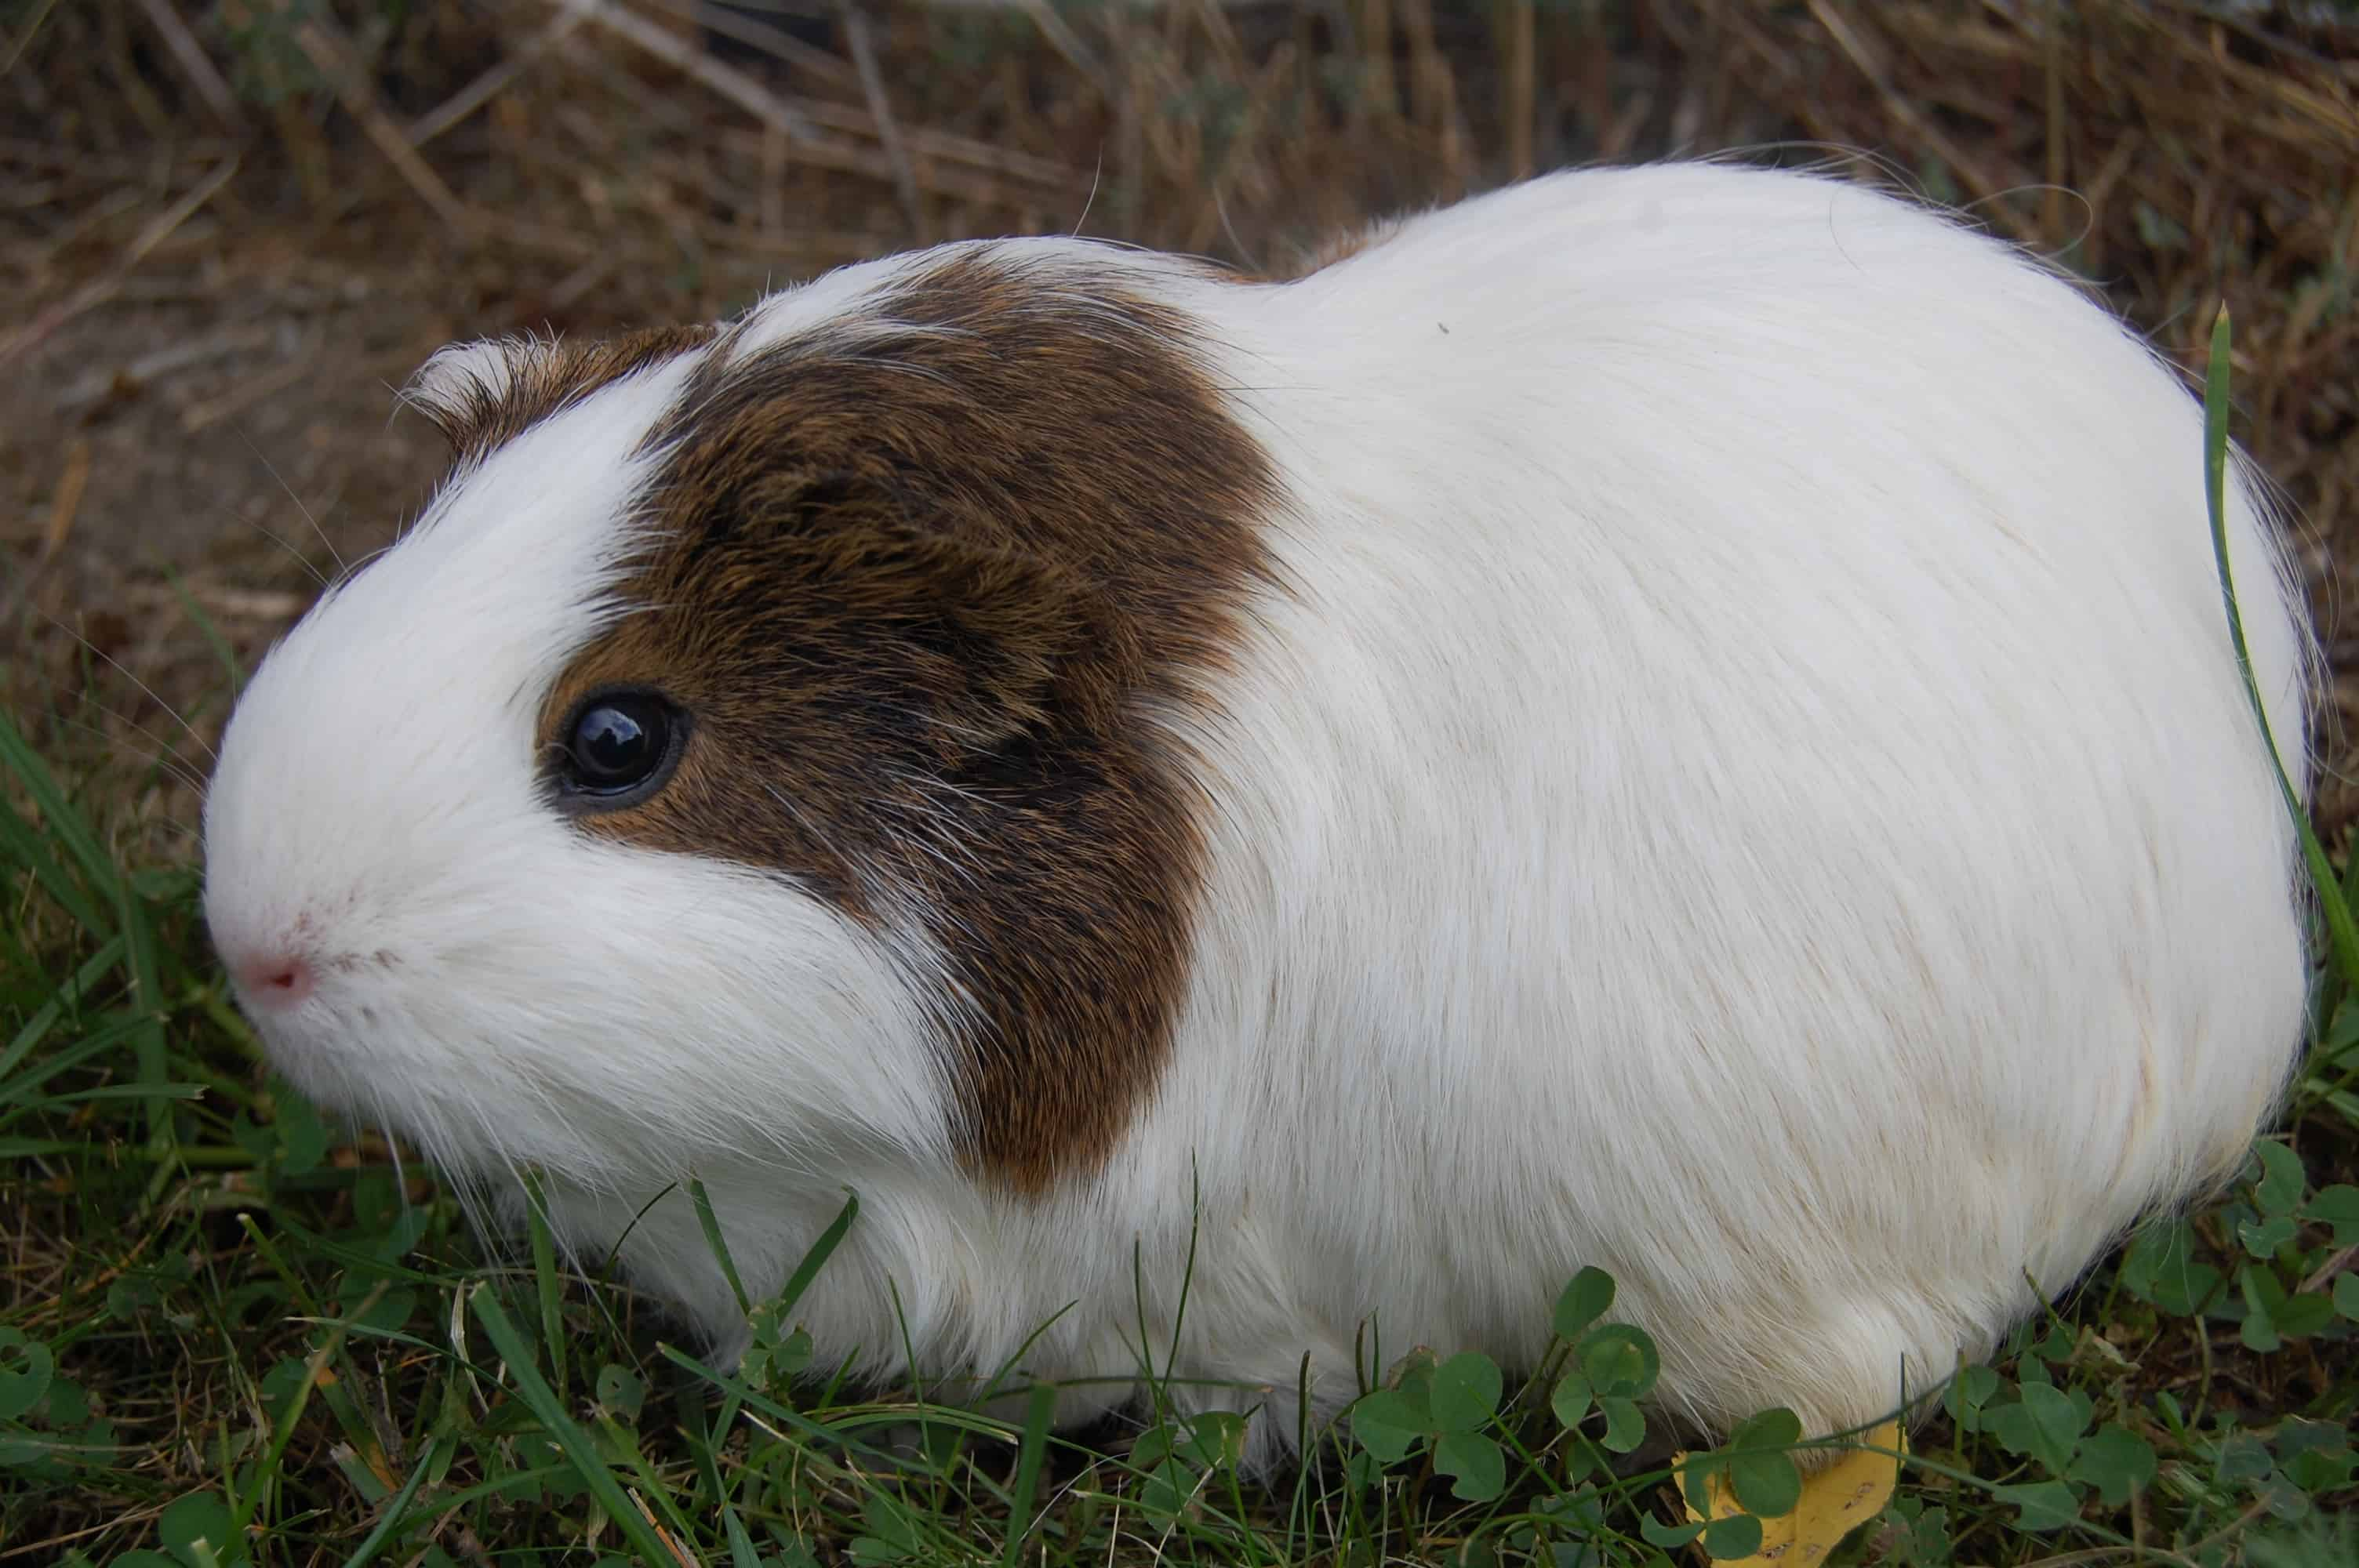 This American Guinea Pig has brown and white fur.